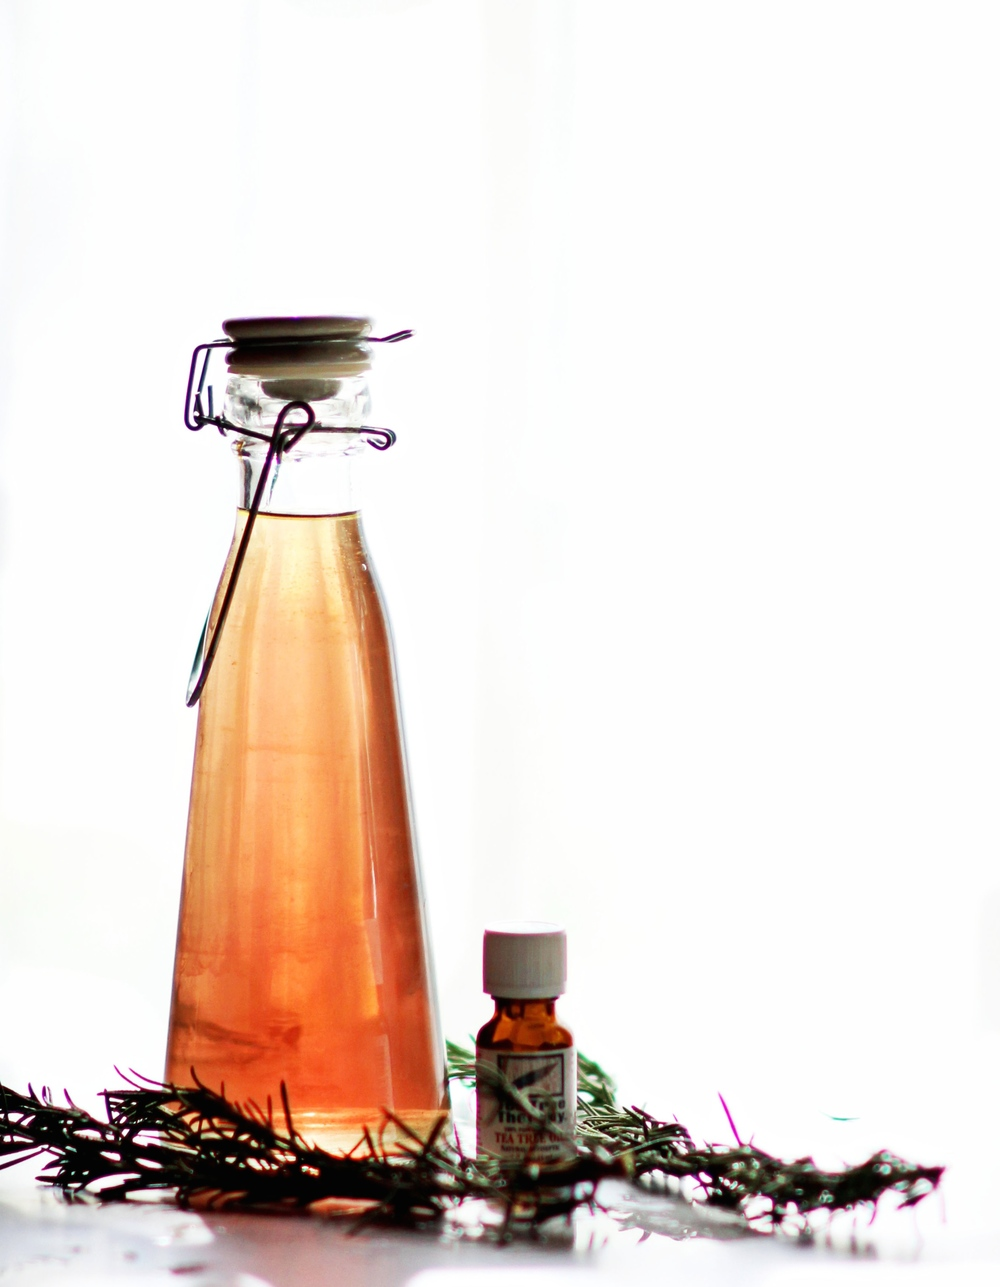 Homemade Mouthwash | Most Popular in March